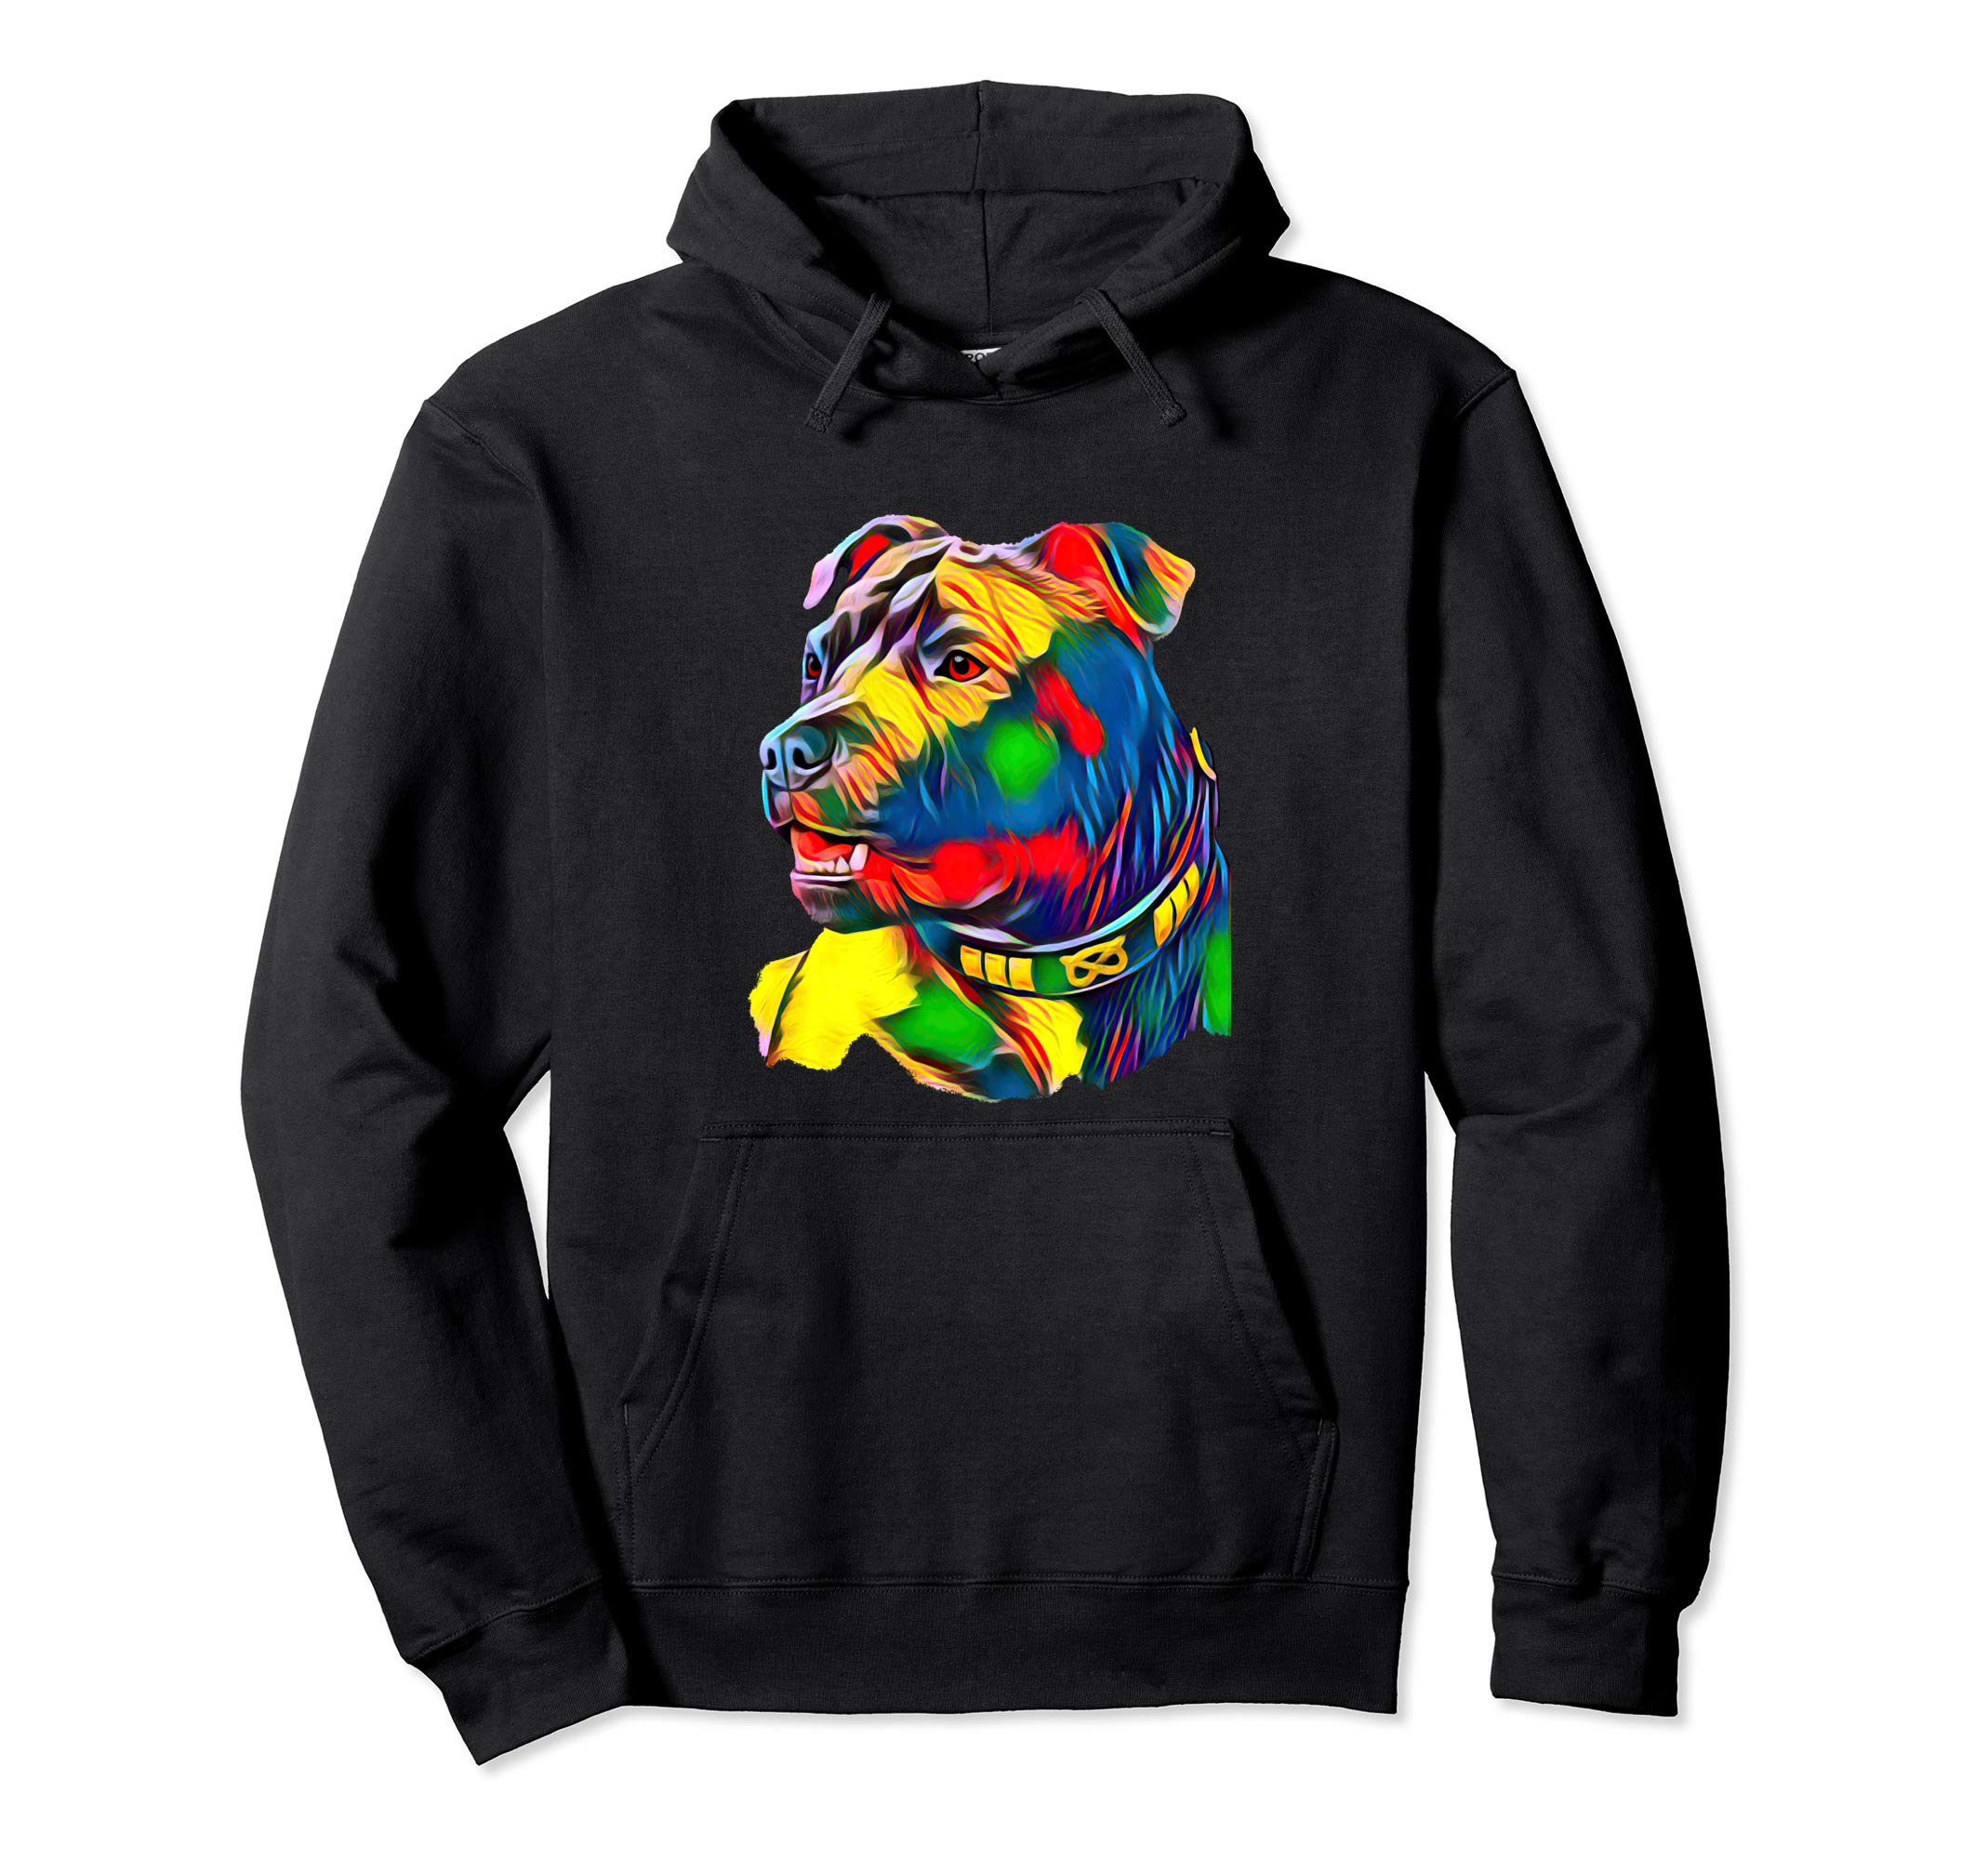 Watercolor Art Colorful American Staffordshire Bull Terrier Pullover Hoodie 1